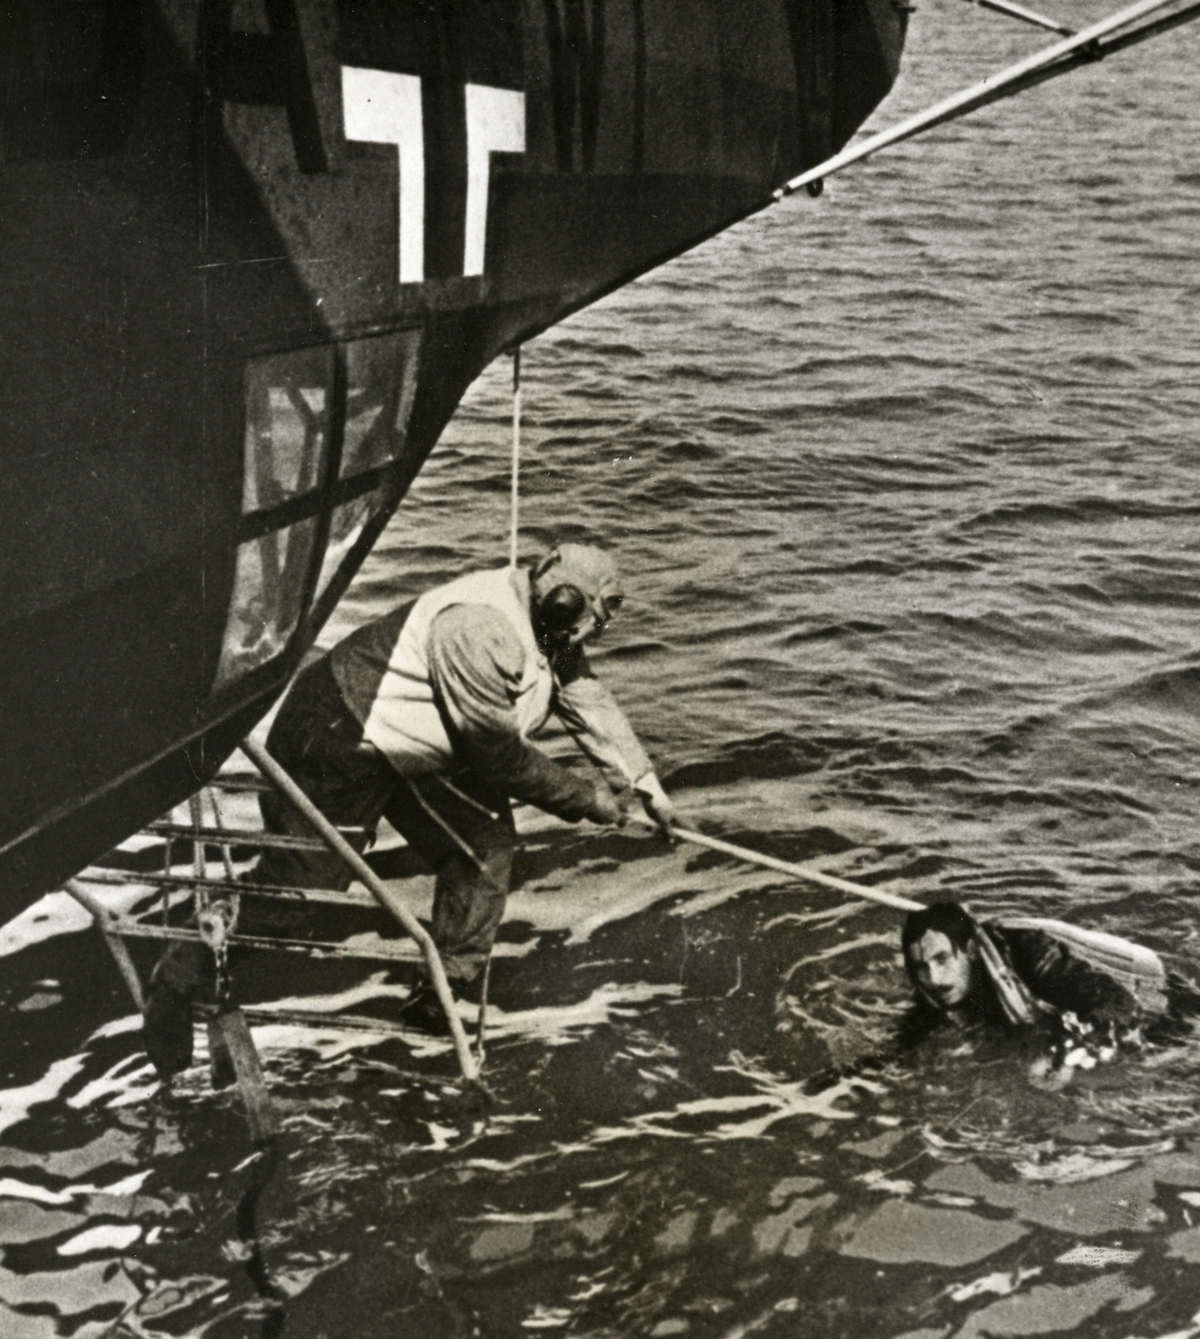 This photo appeared in Life magazine on Nov 9, 1940 -- more than a year before the US was at war with Nazi Germany. It shows the rescue of a Luftwaffe pilot by the crew of a German seaplane. Unidentied location. Seaplanes played a key role in SAR missions; save the times when the sea was too rough, a seaplane could easily touch the water and pluck survivors from its embrace.